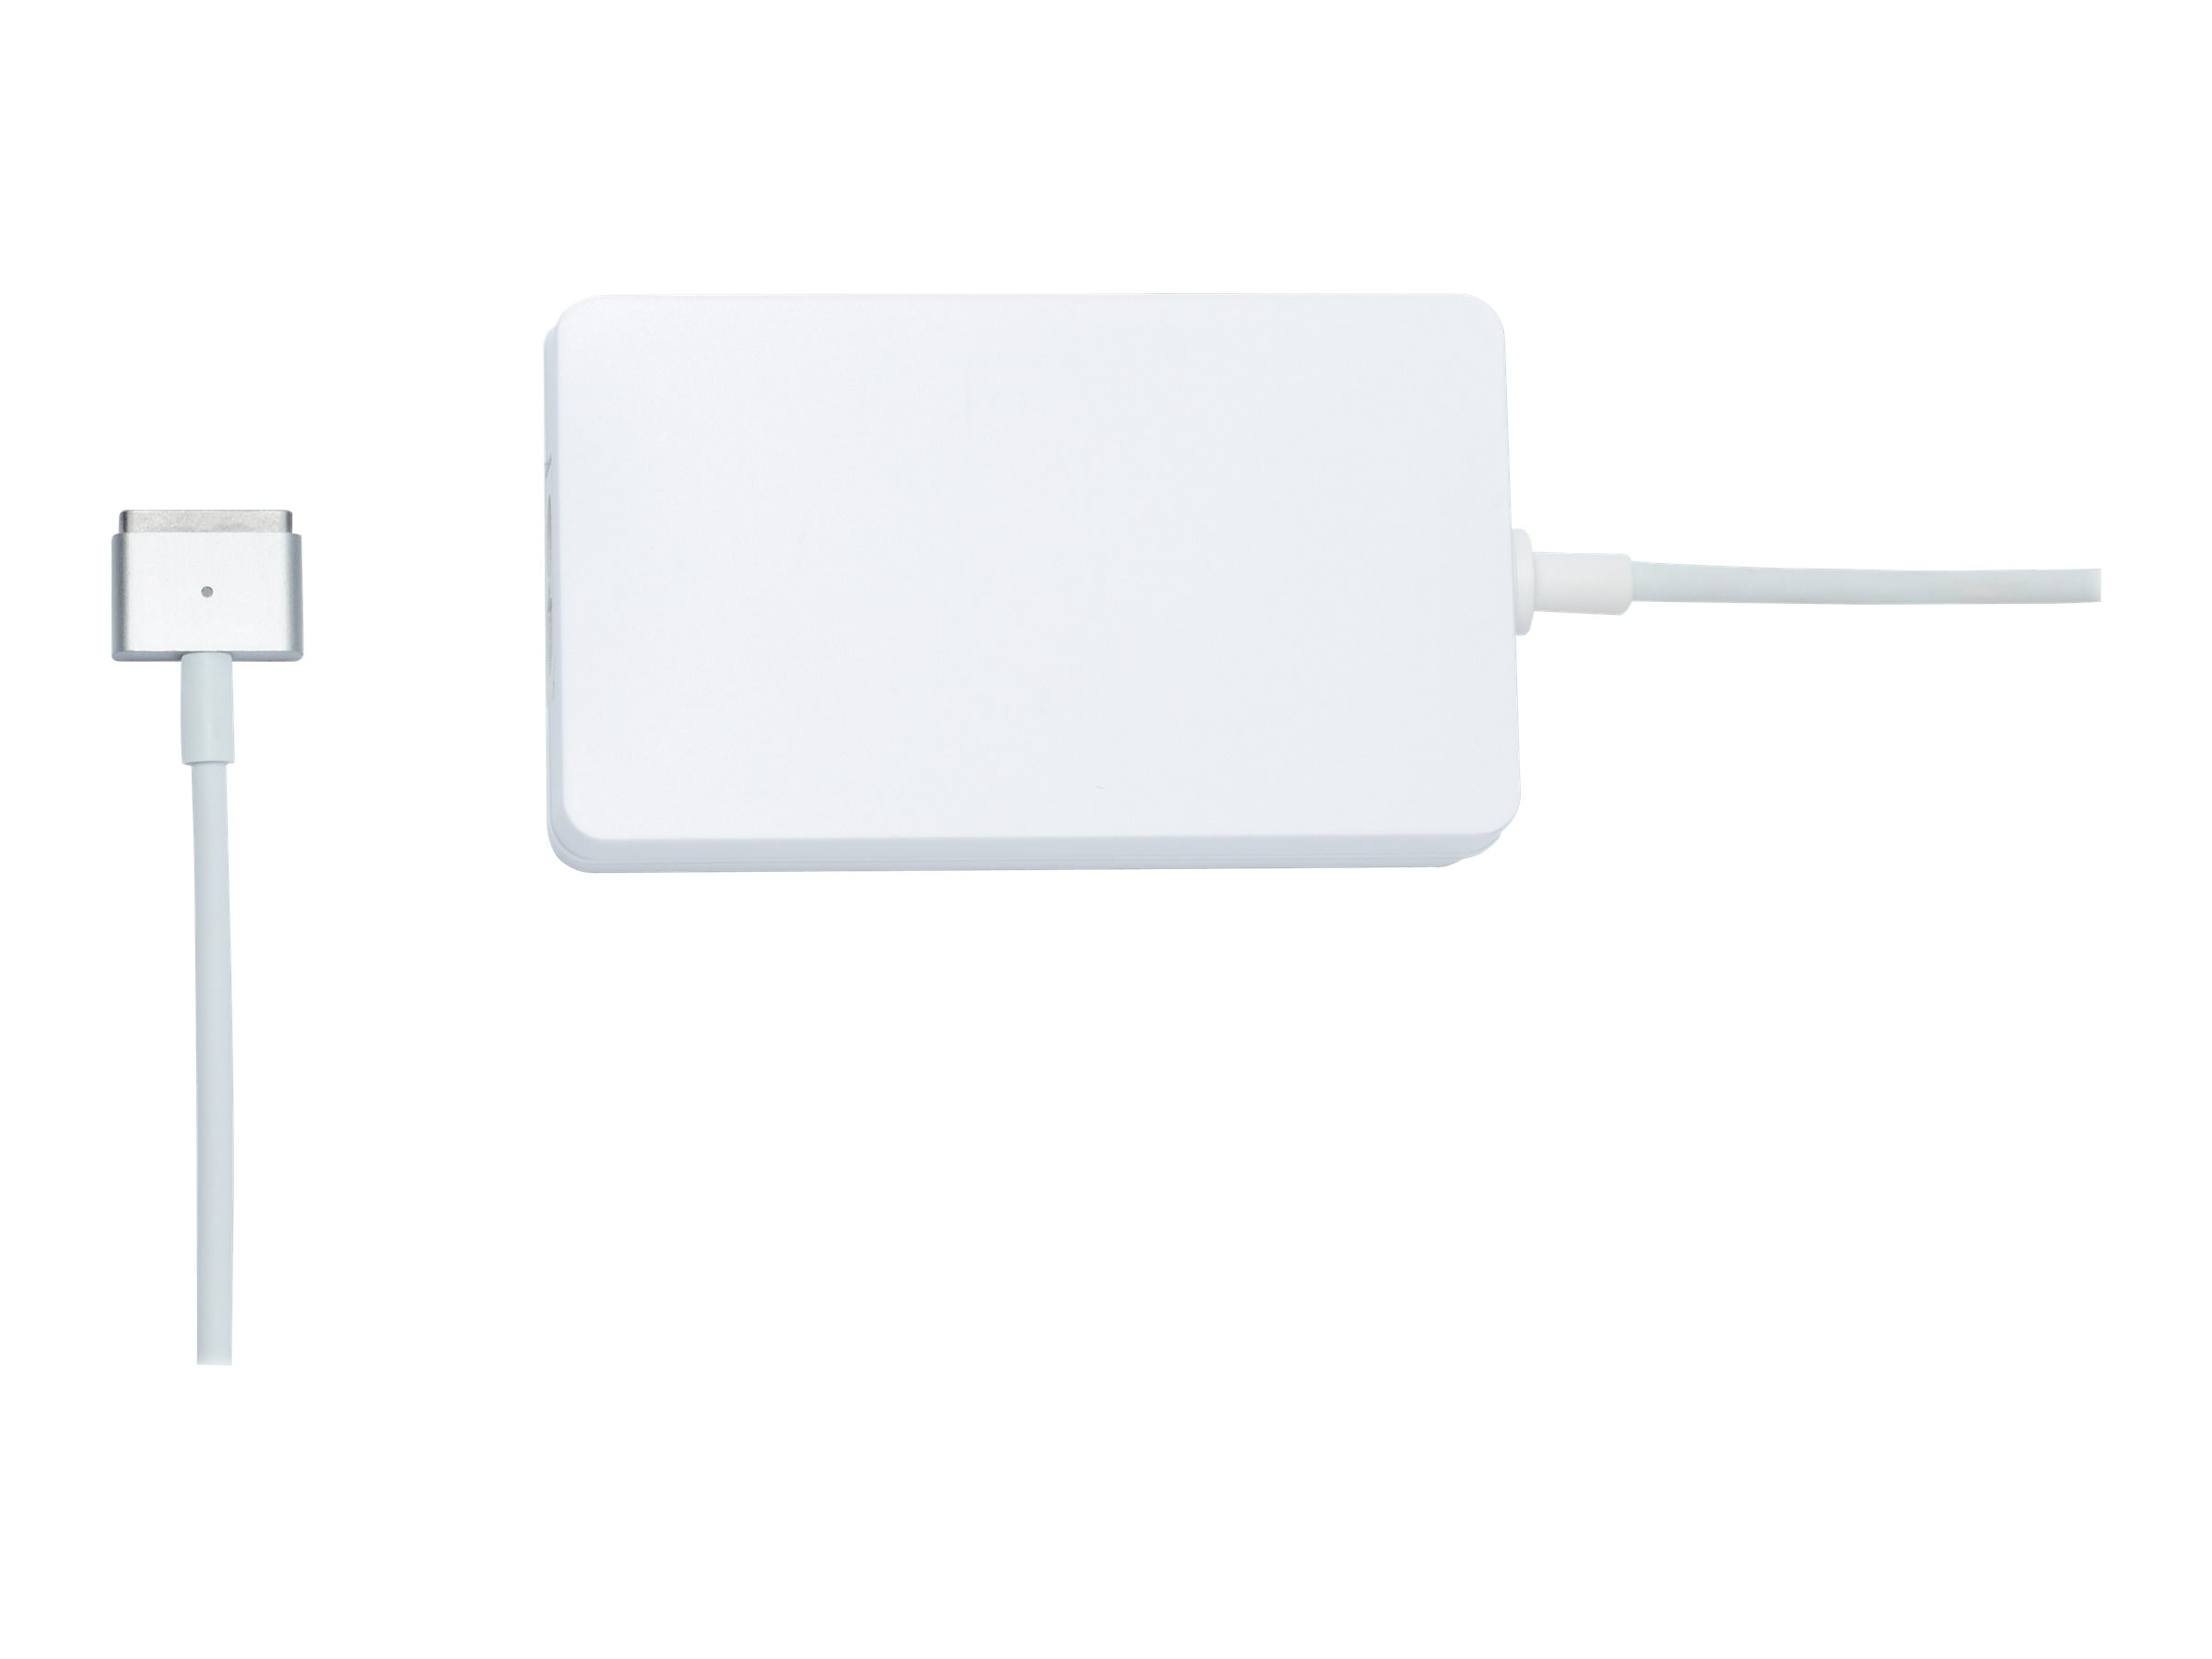 BTI AC Adapter for Macbook Air MB133LL A, A1345-BTI